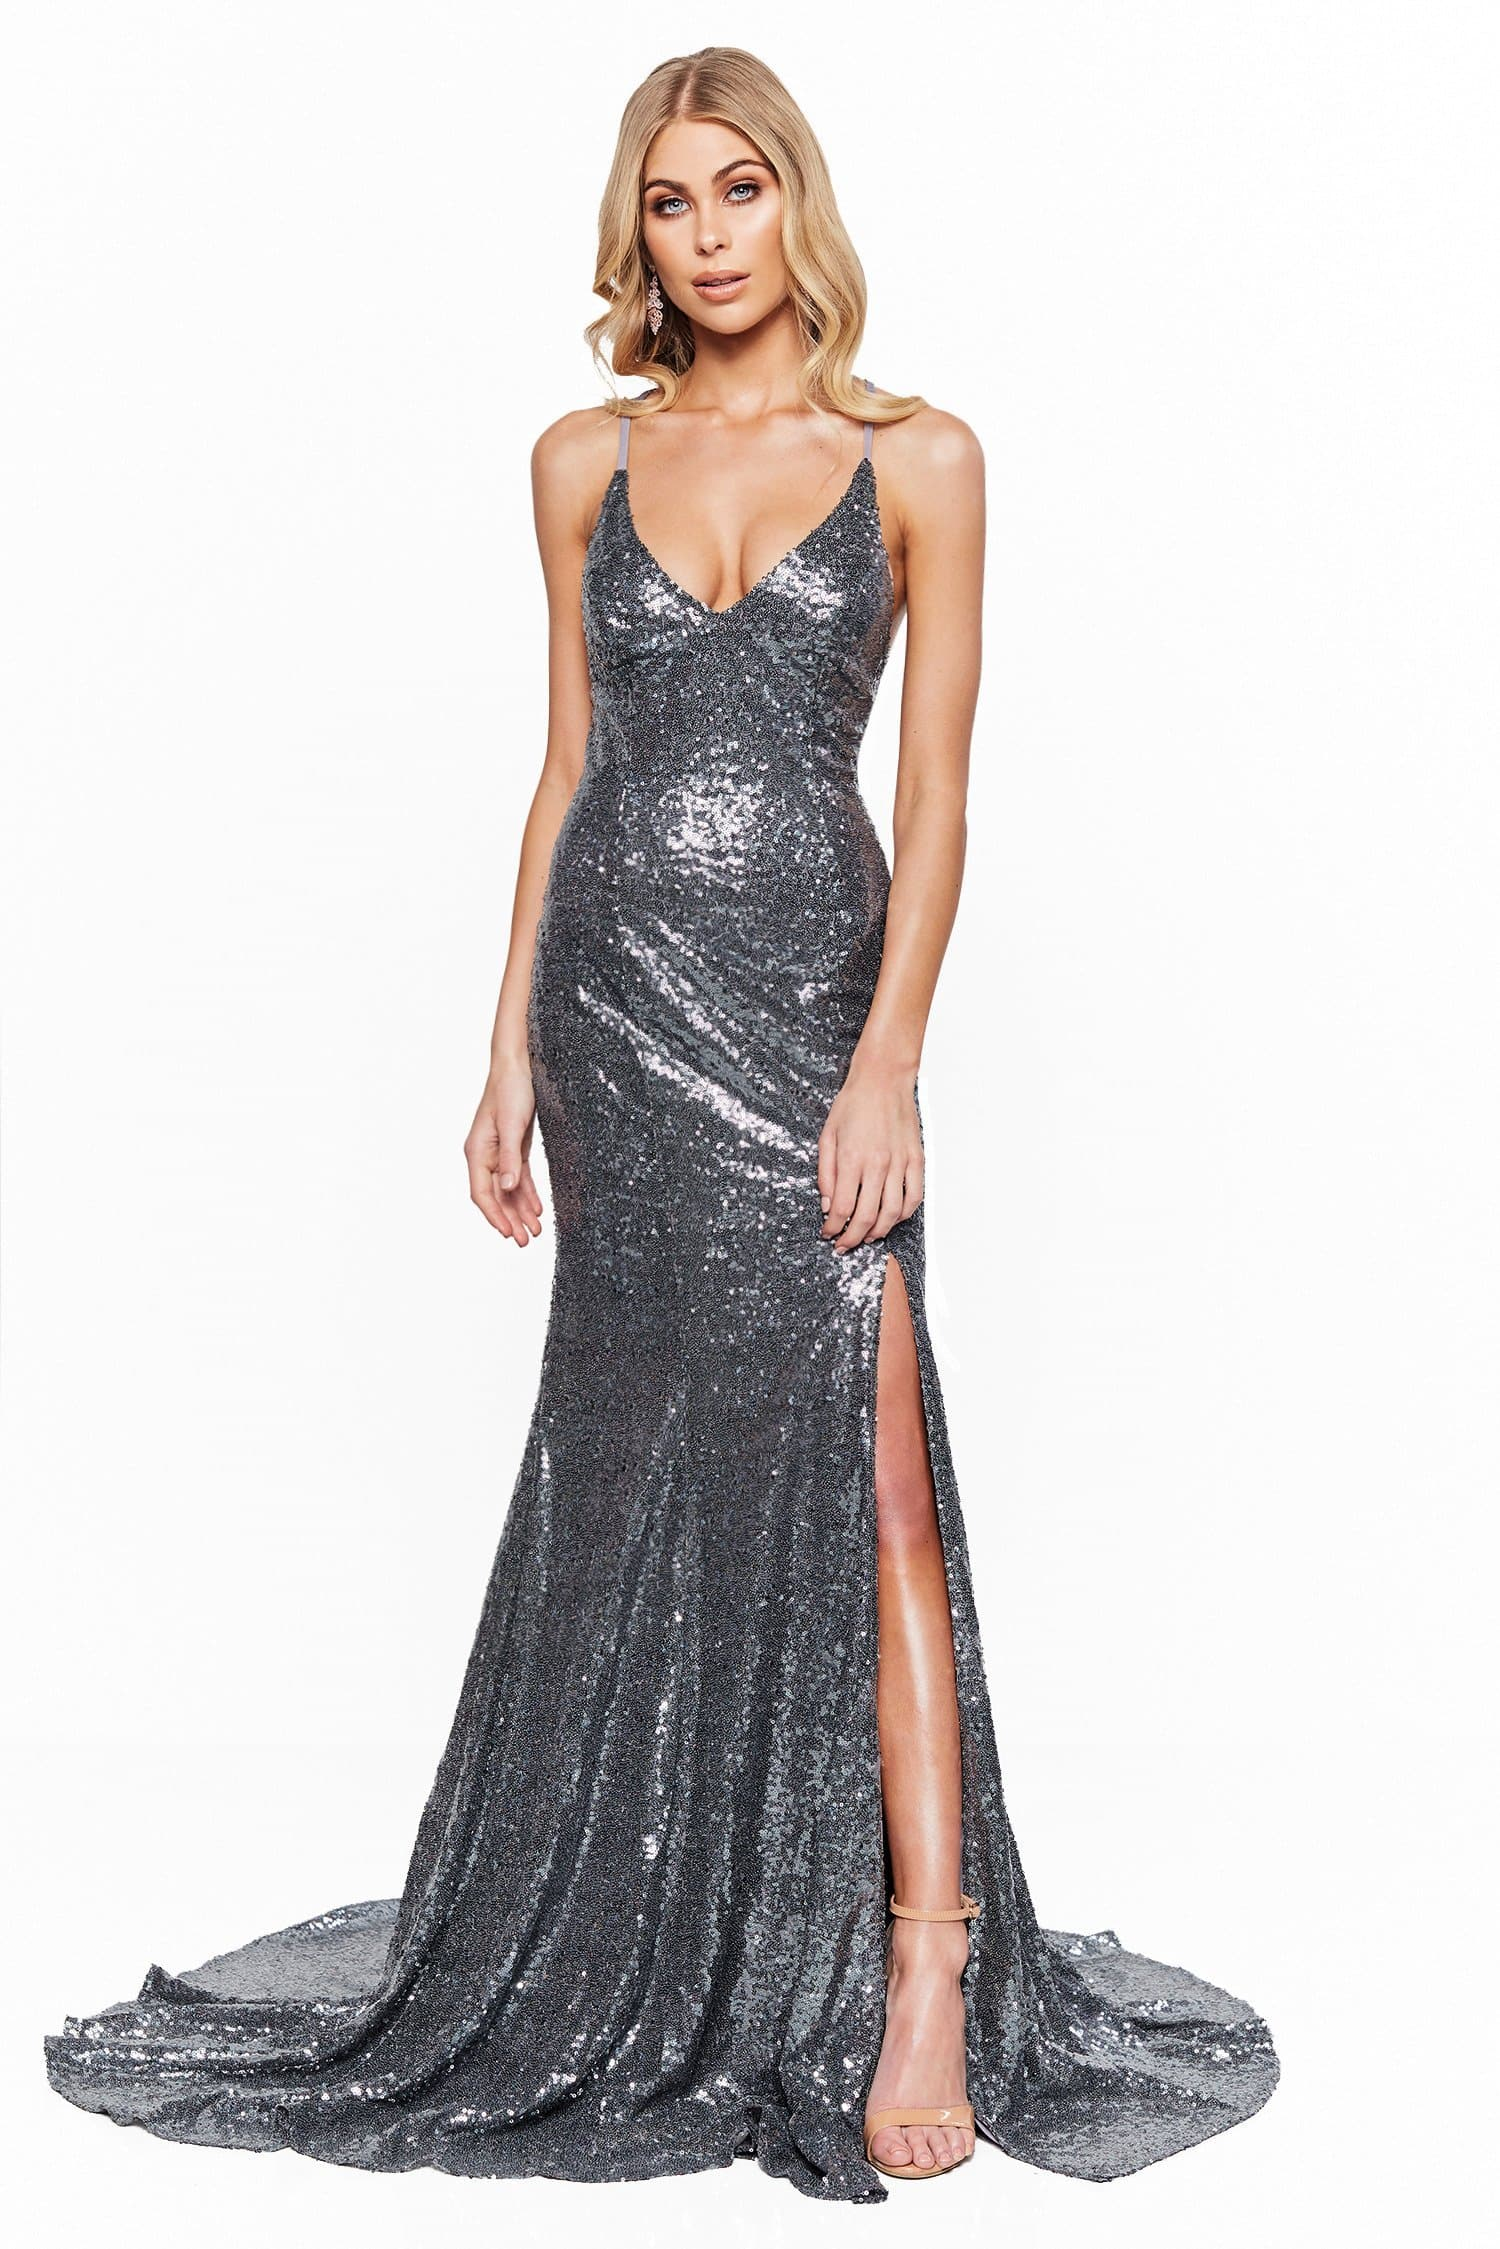 A&N Bridesmaids Kara - Gunmetal Sequin V-Neck Gown with Lace-Up Back